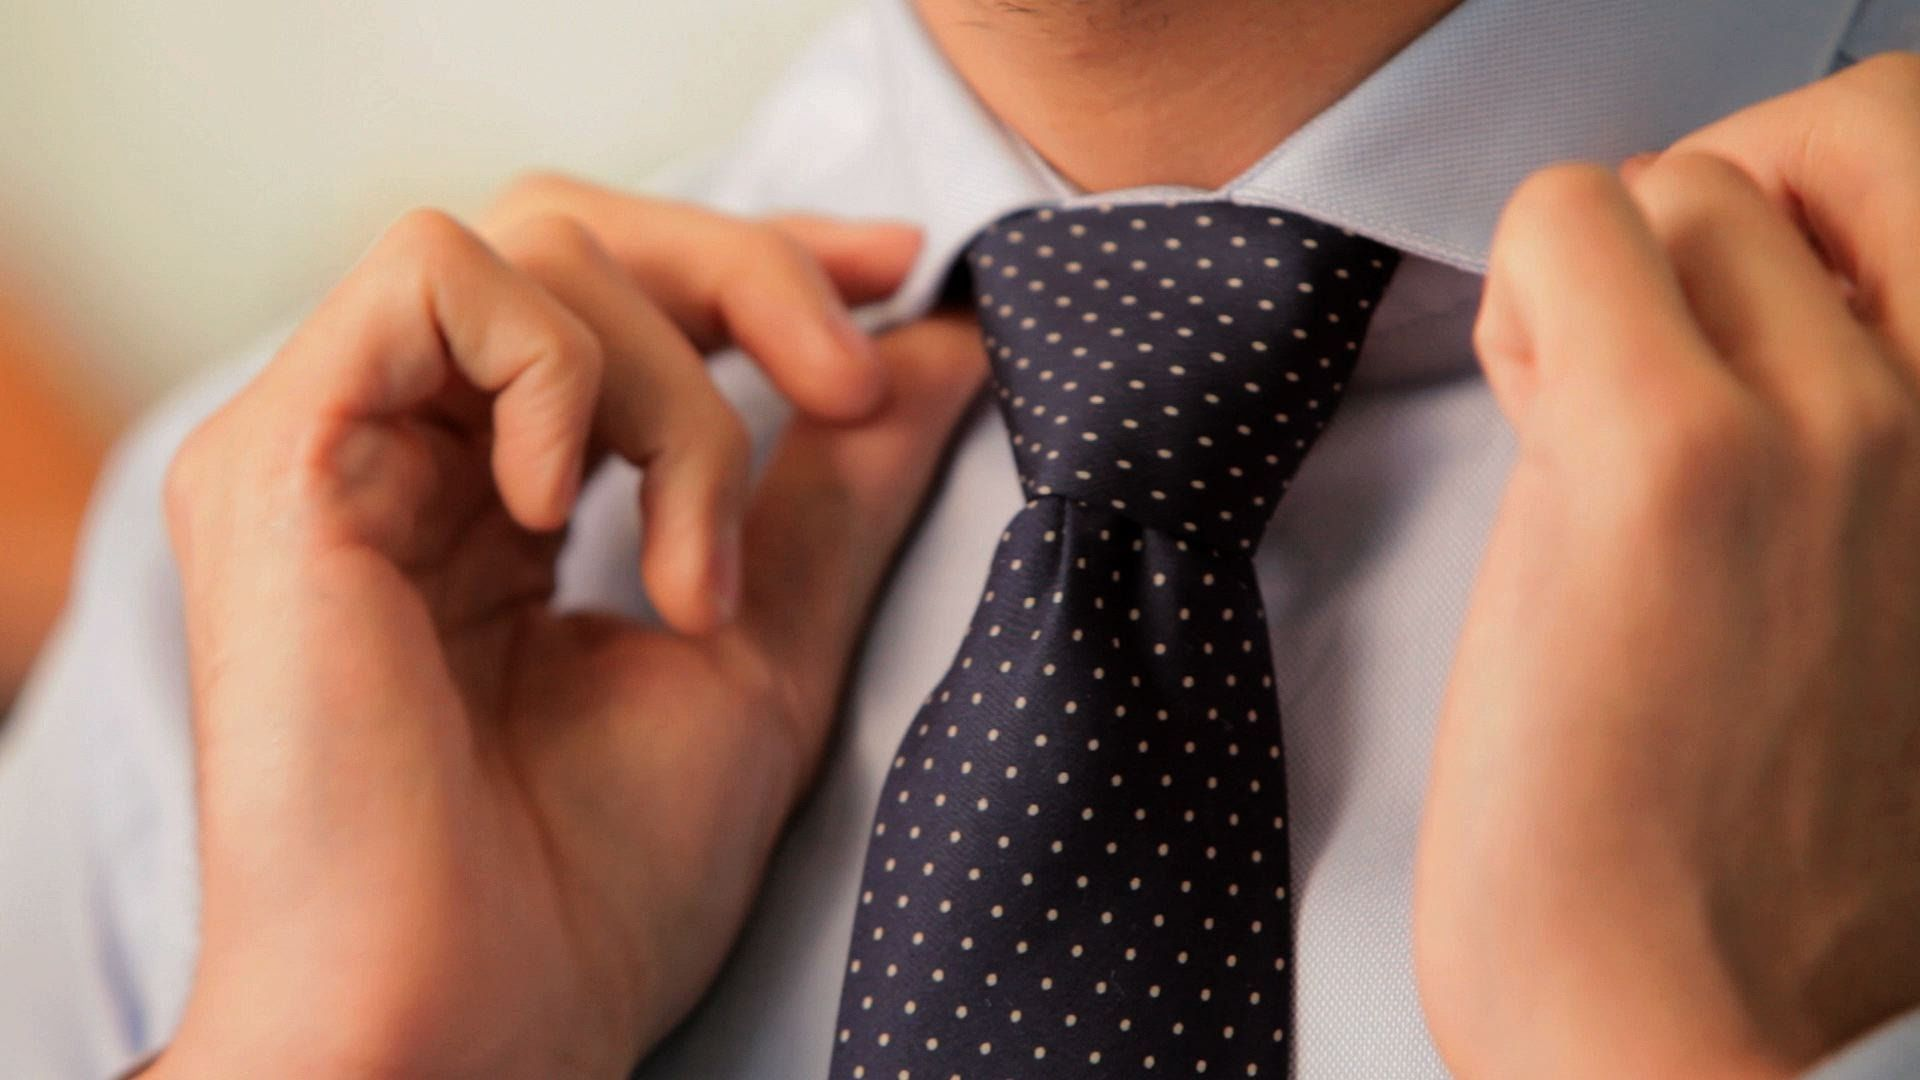 Pin by parker chastain on the style of a guy pinterest windsor how to tie a windsor knot by howcast would you like to know how to tie a windsor knot in this short video howcast teaches the viewer how to tie this ccuart Image collections